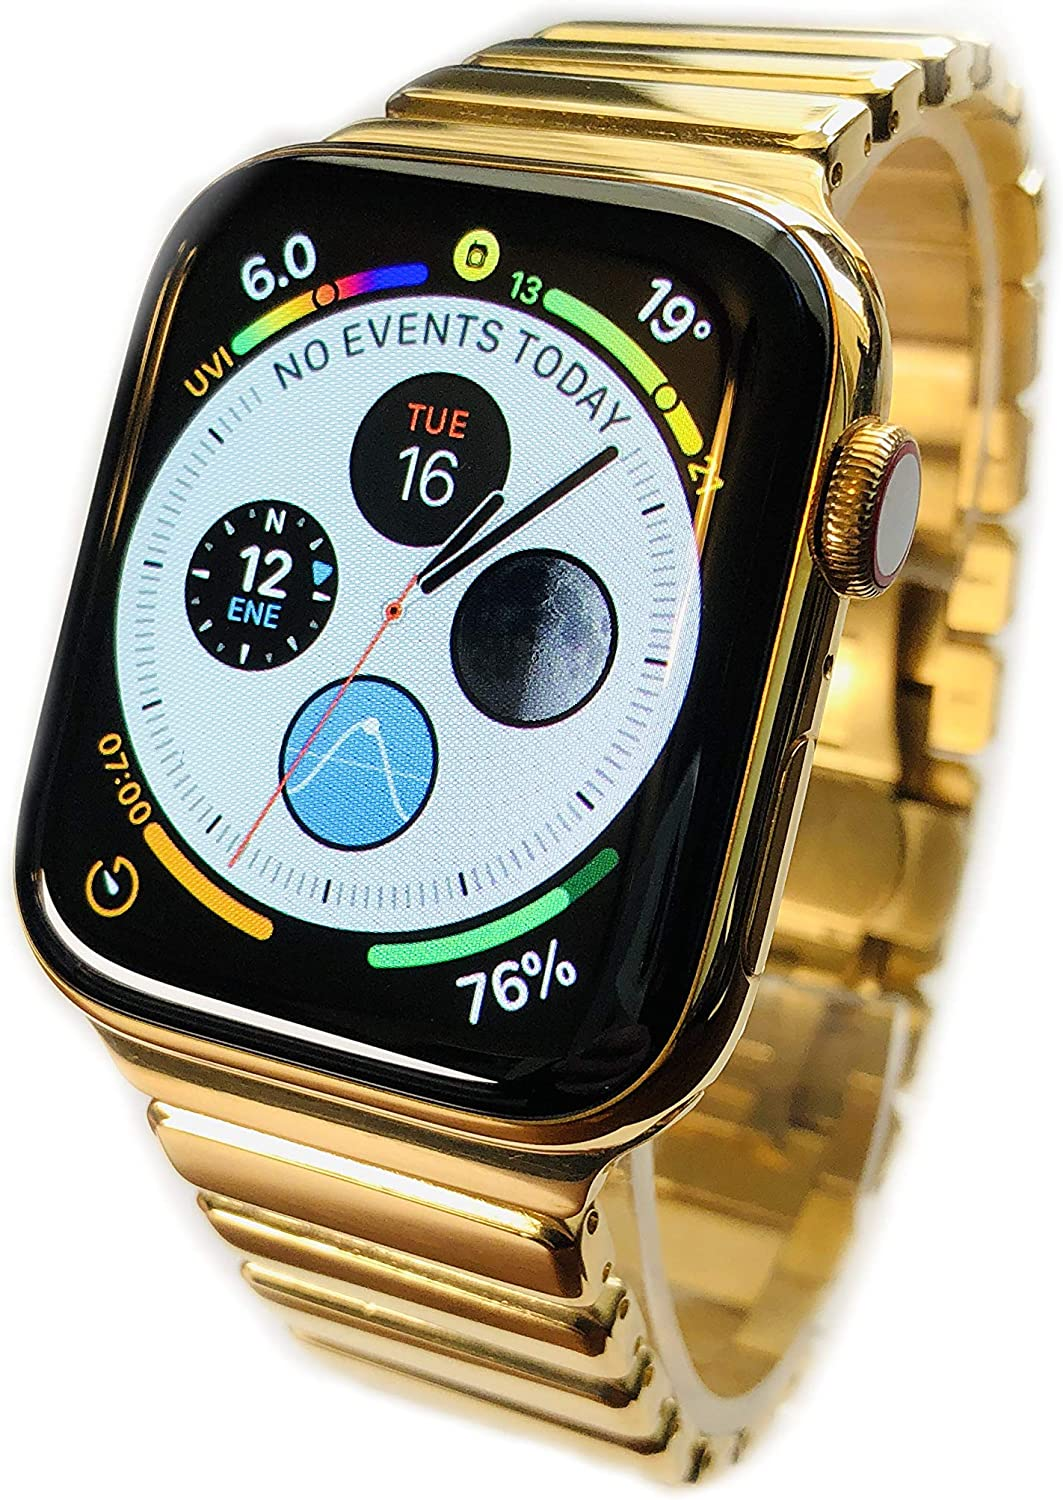 Custom 24K Gold Plated 44MM iWatch Series 4 with Diamond Polished Band LTE+GPS US Version